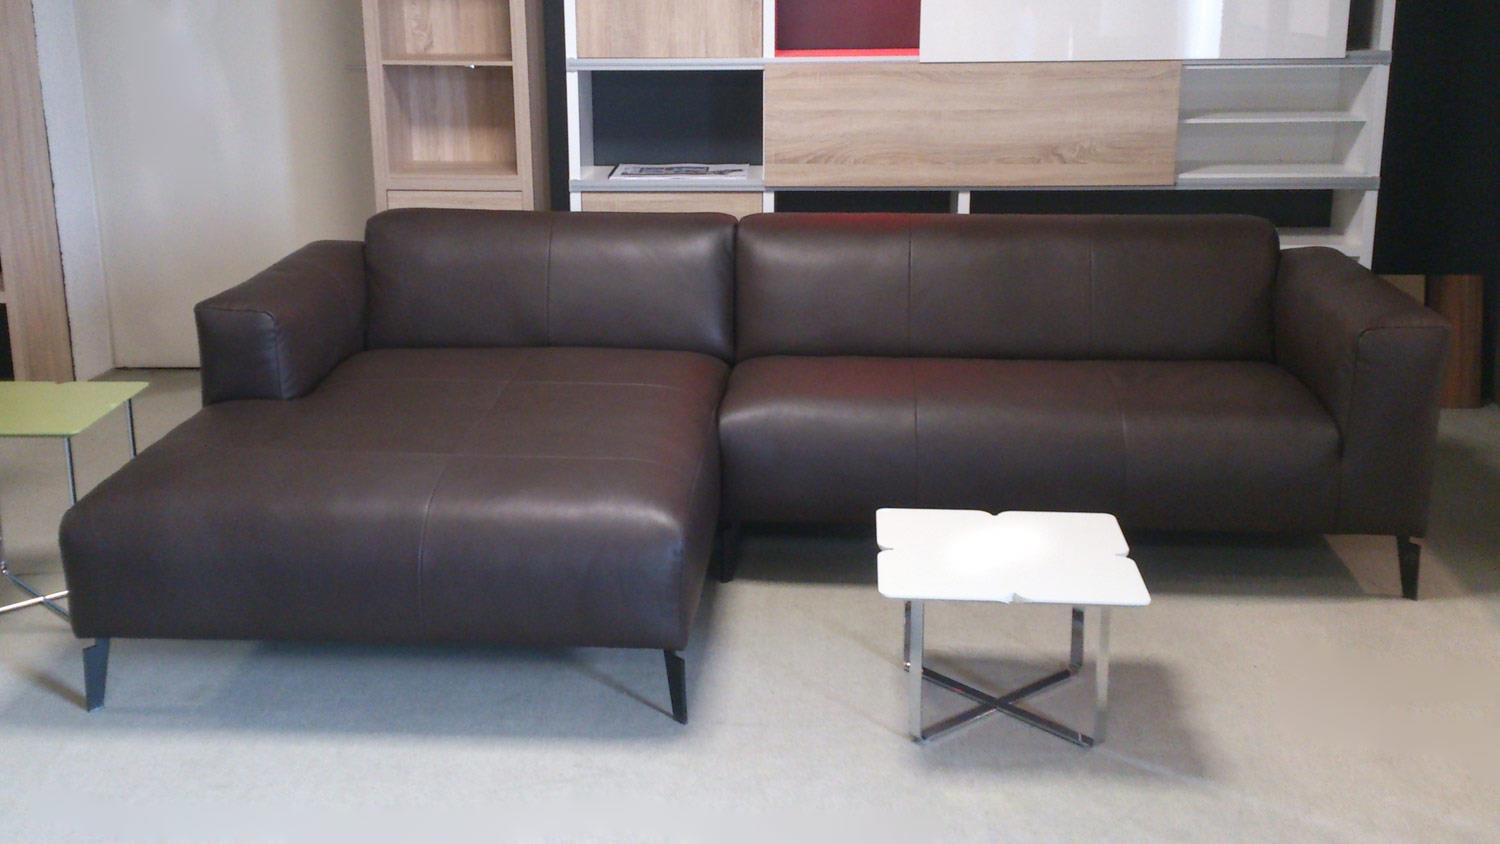 Freistil 3 ROLF BENZ Ecksofa links Echtleder braun